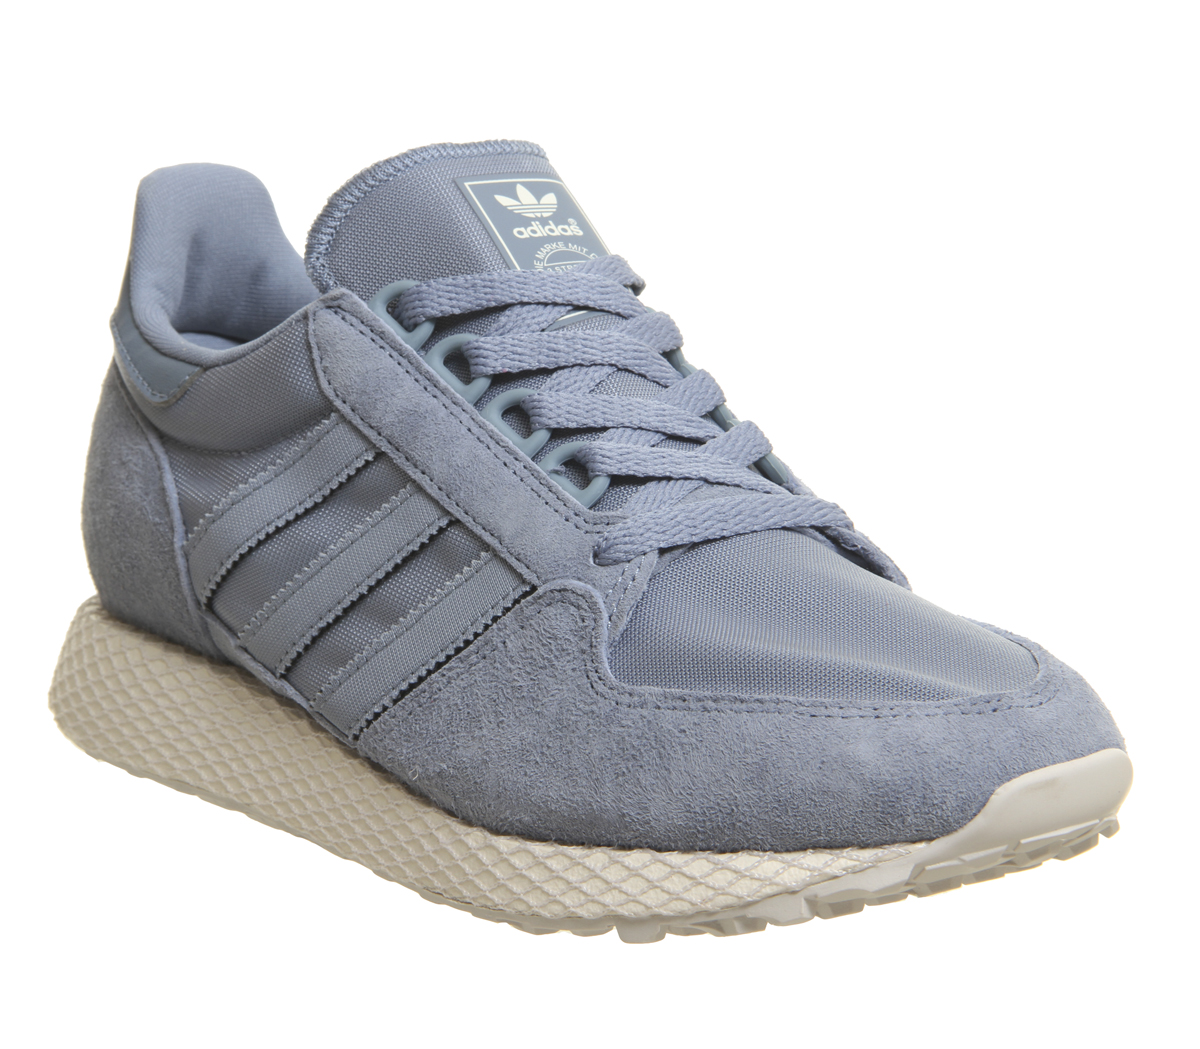 942b06fdef5 Sentinel Womens Adidas Forest Grove Trainers Raw Grey Cloud White Grey One  Trainers Shoes